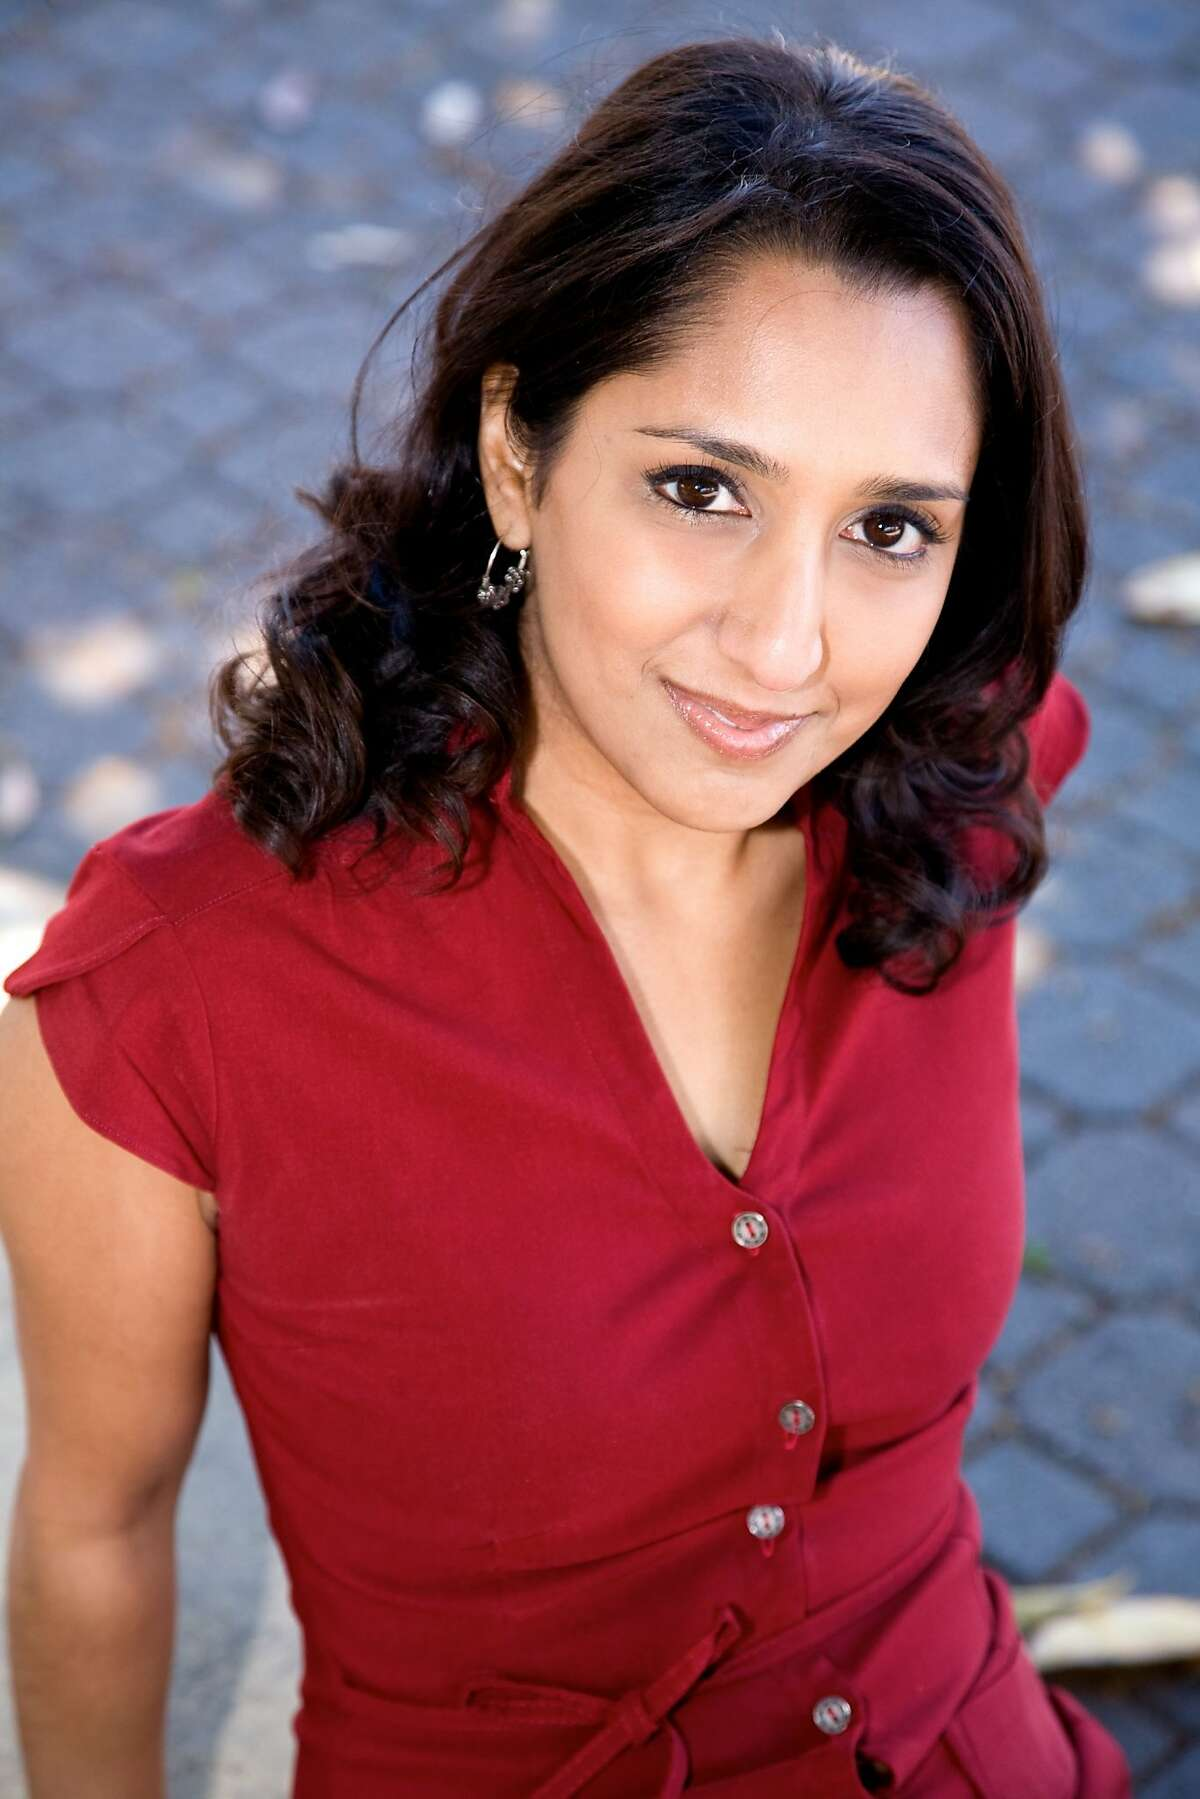 Comedian Dhaya Lakshminarayanan, who has been seen featured on Comedy Central, is just one of four comedians on the lineup for Comedy Night for Immigration Rights, a fundraiser for the International Institute of the Bay Area on Thursday, April 28.